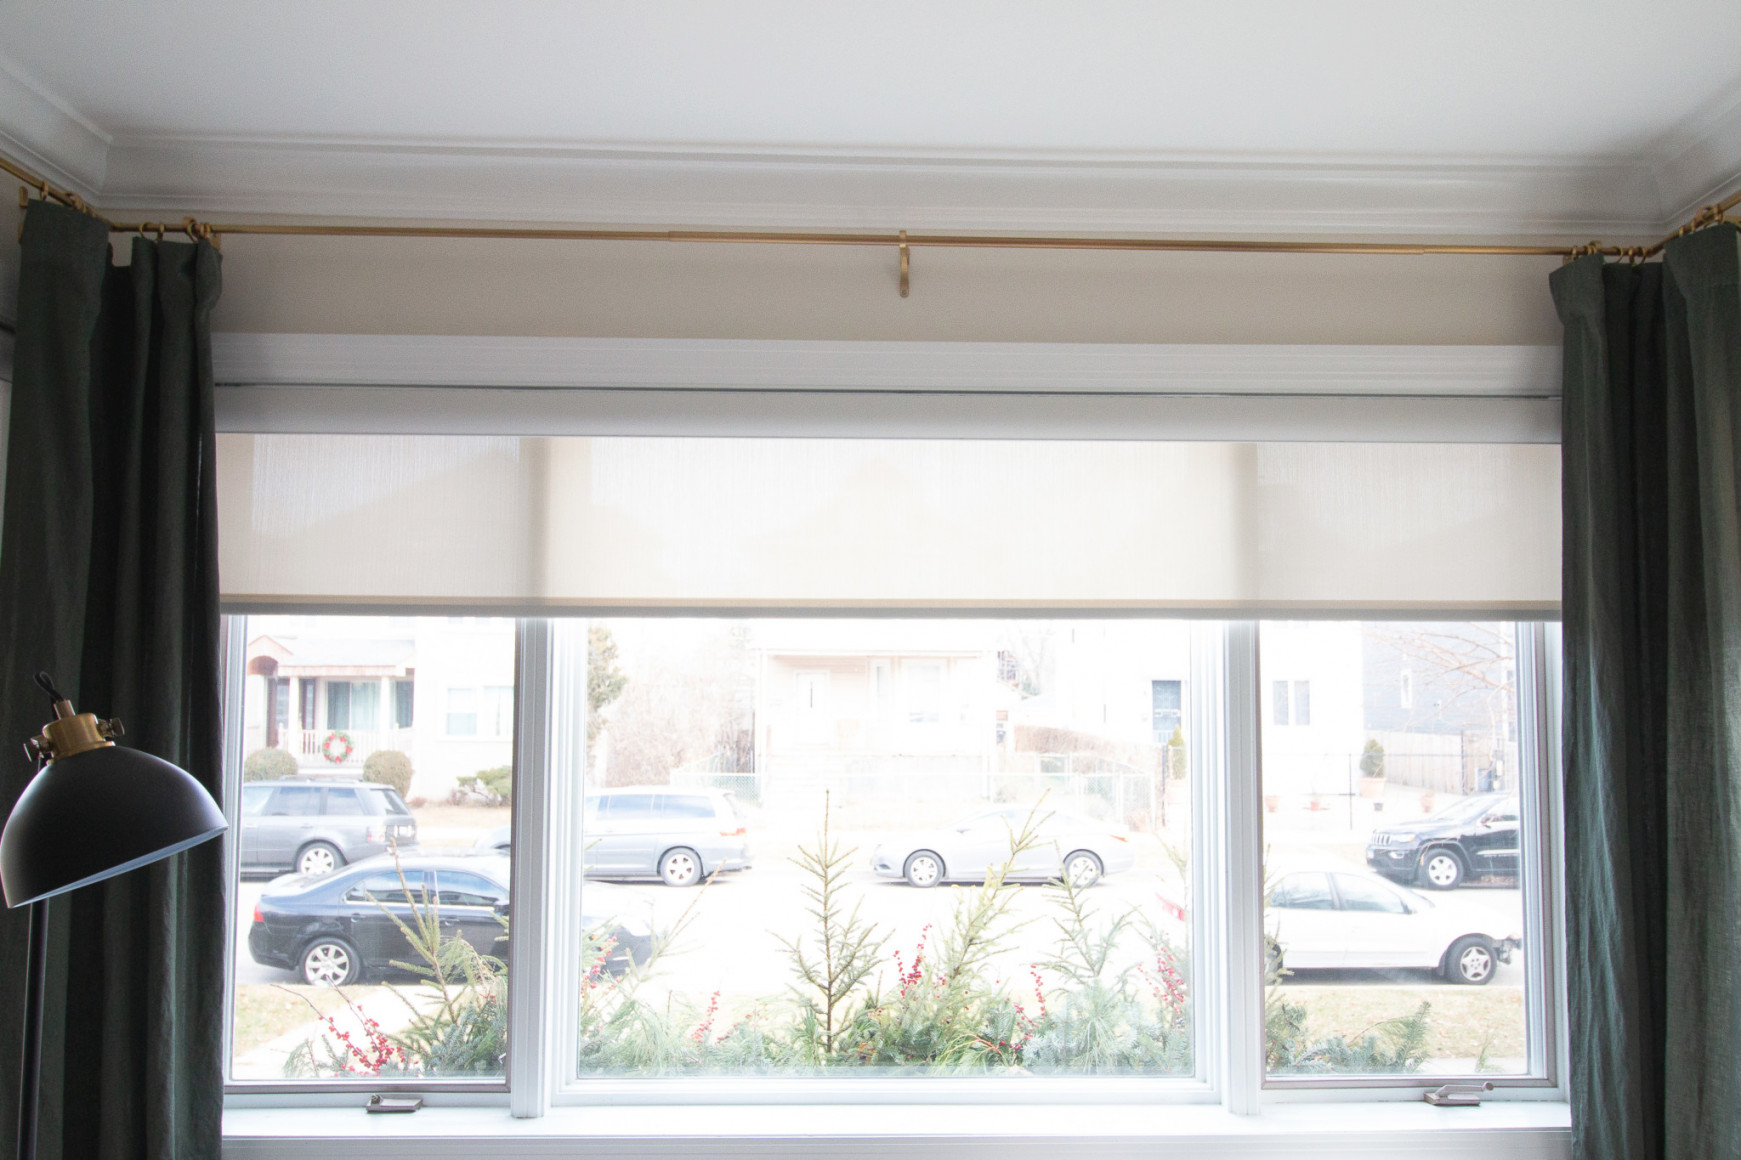 Our New Living Room Window Shades | The Diy Playbook regarding Curtains For Large Living Room Windows